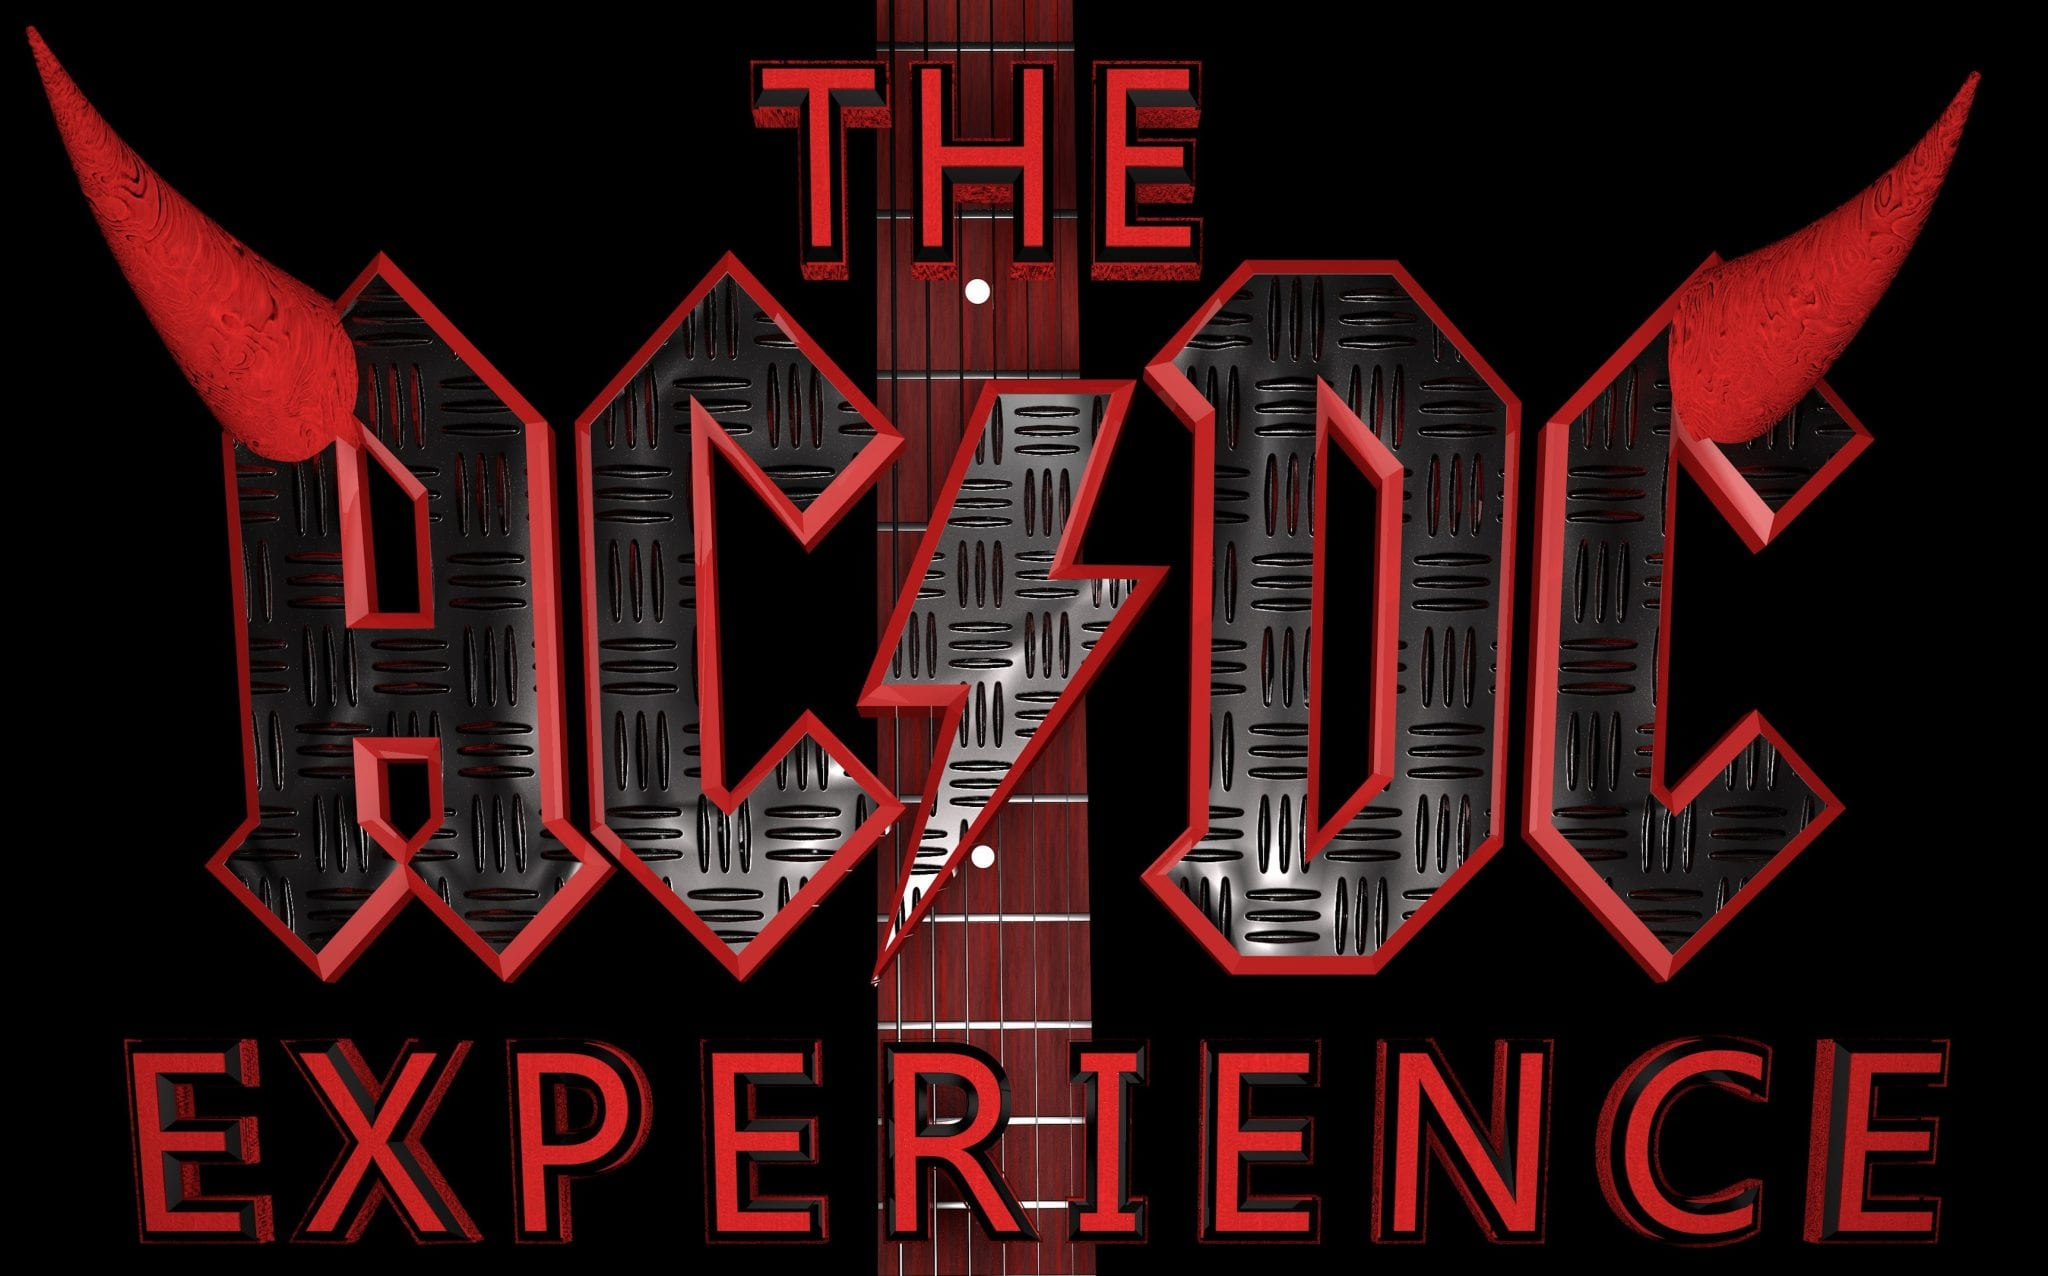 THE AC/DC EXPERIENCE ANNOUNCE 2017 UK TOUR